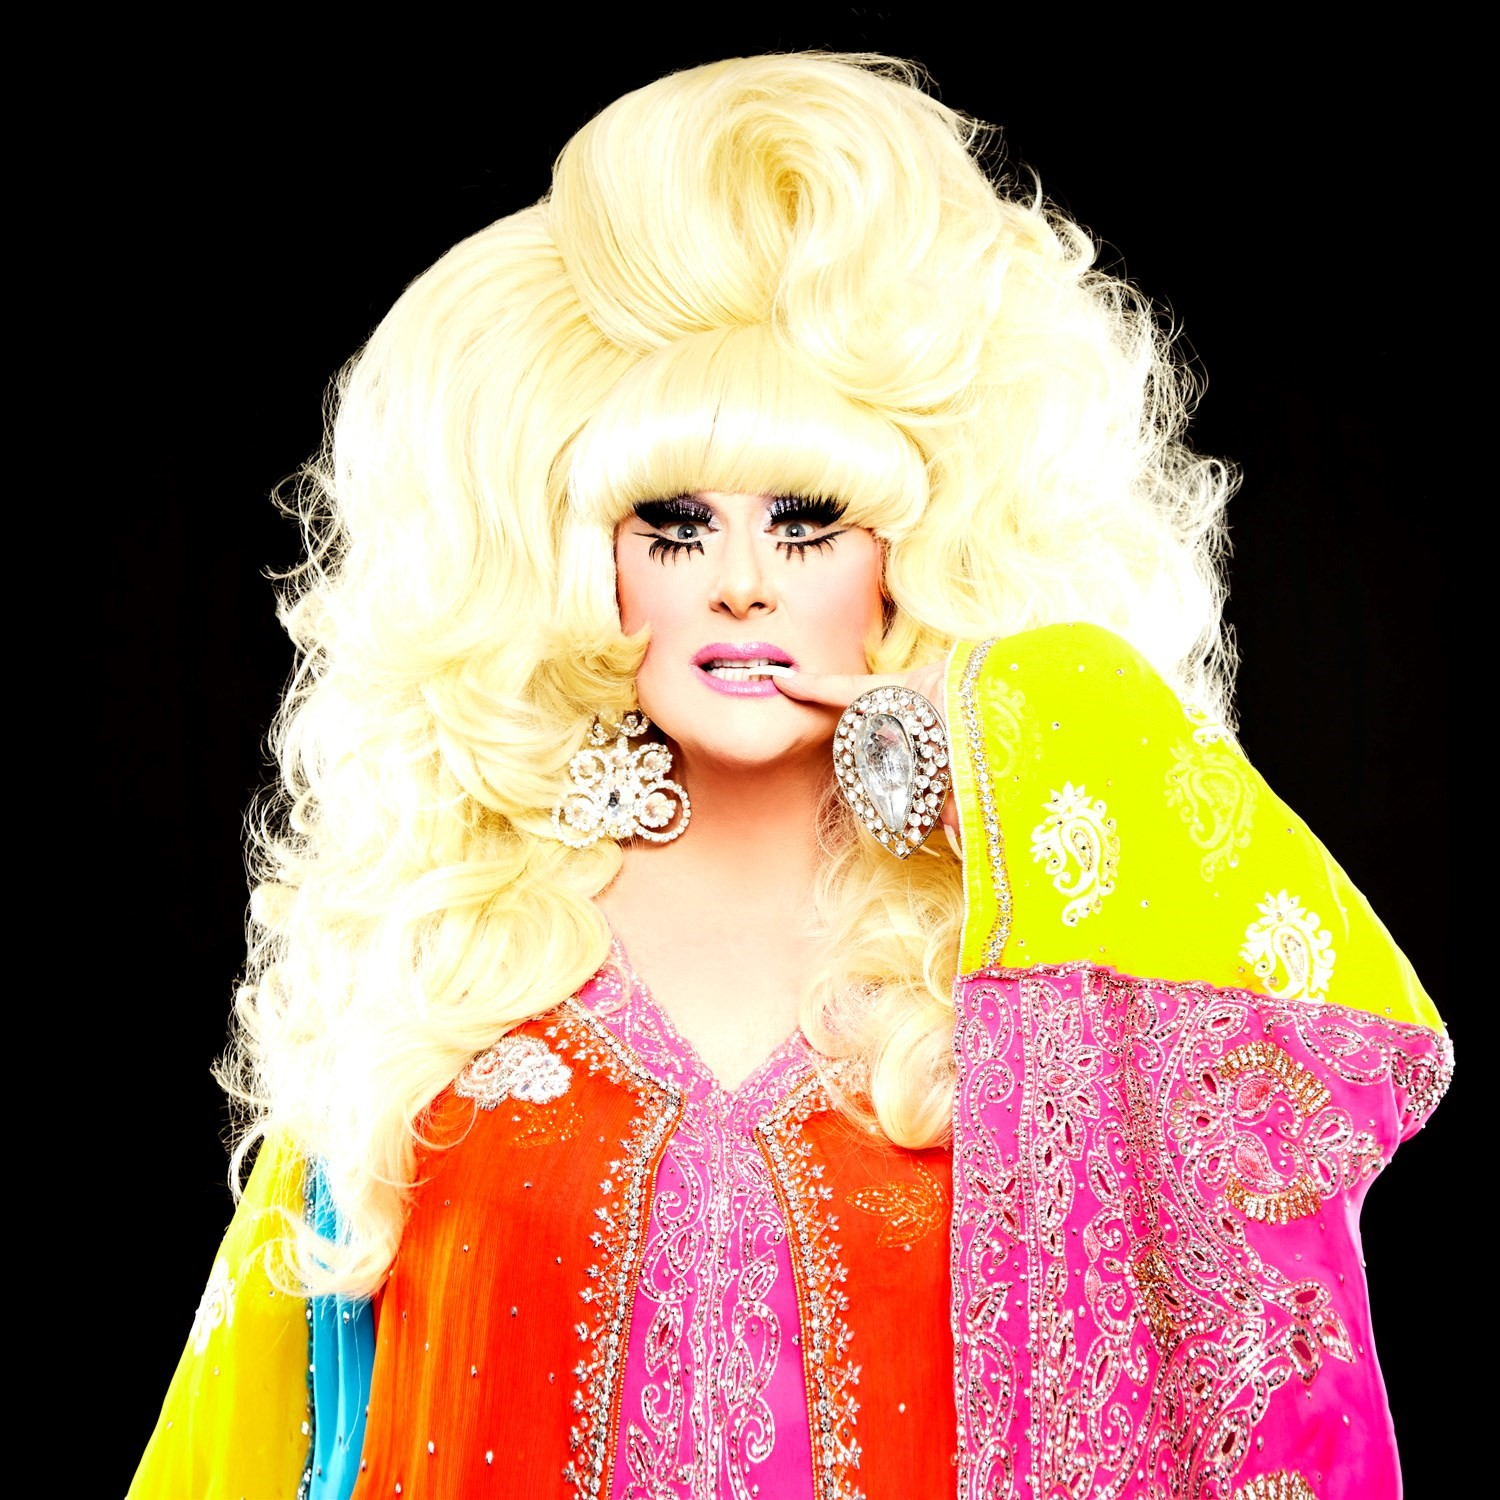 50 Questions With the One and Only Lady Bunny